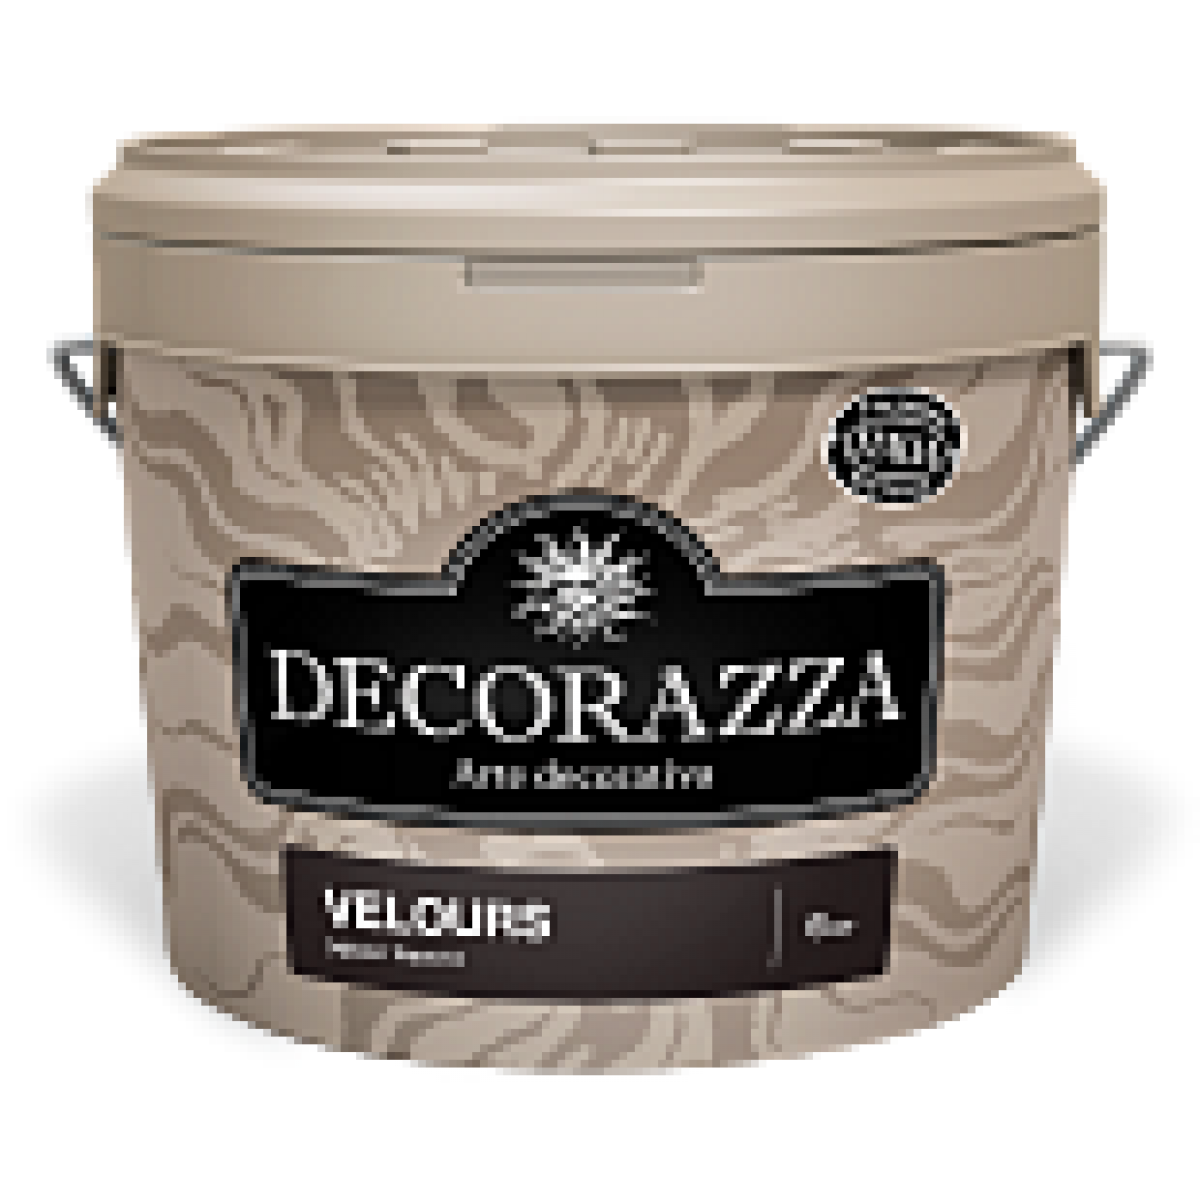 Decorazza Velours - Эффект бархата